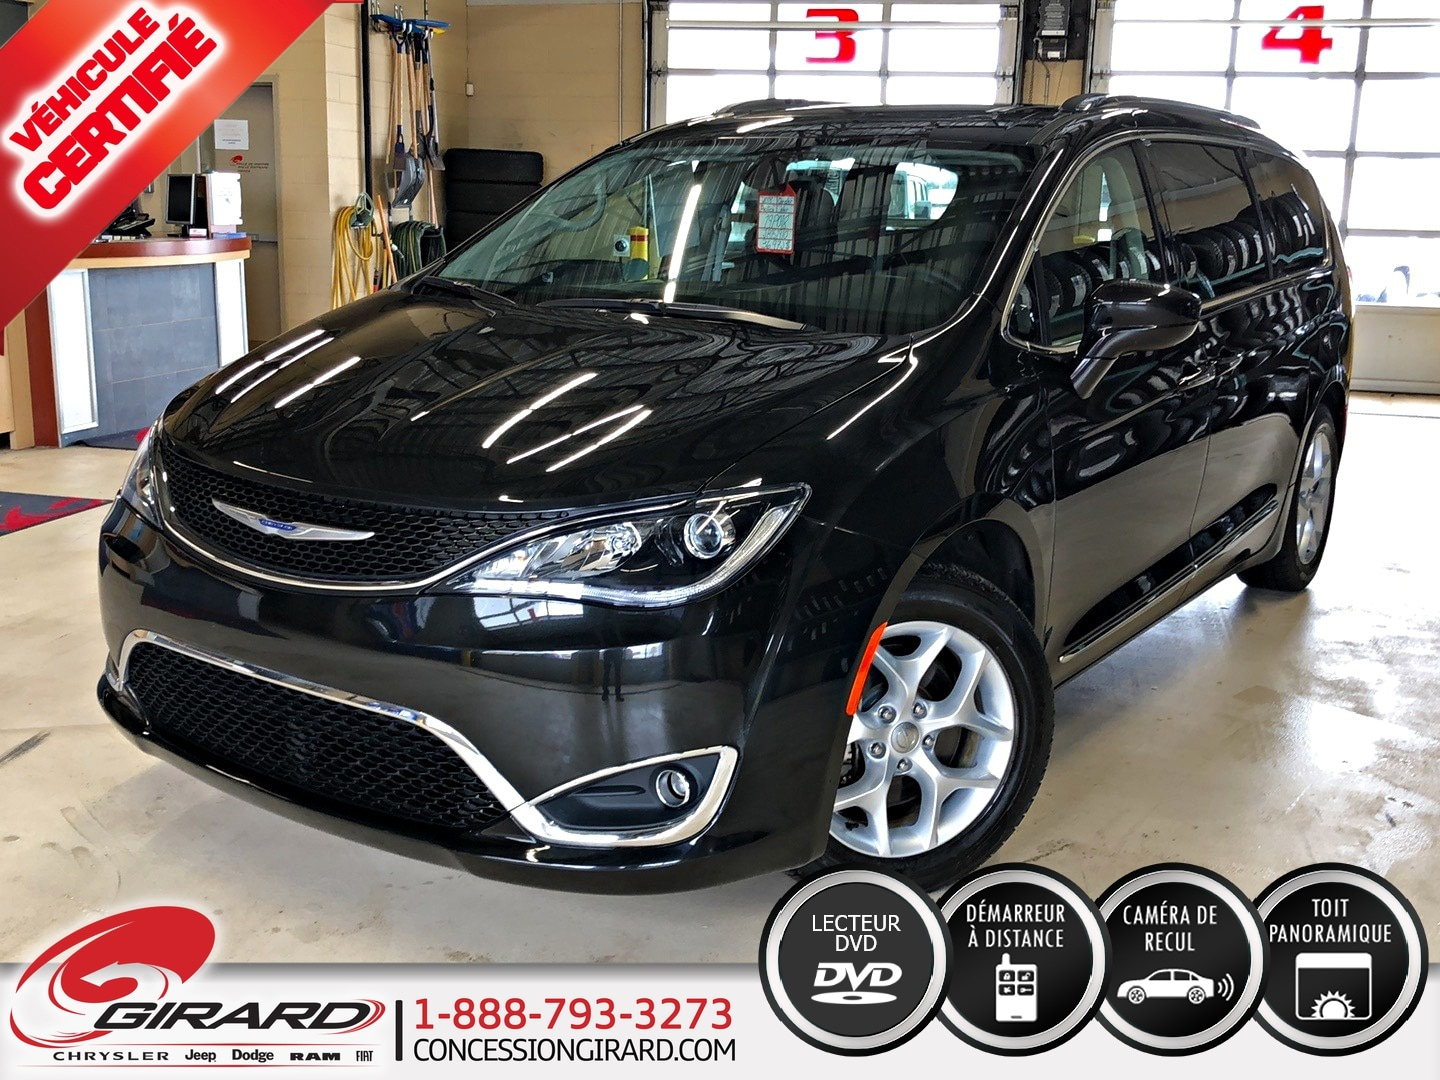 Chrysler Pacifica TOURING-L PLUS*TOIT PANO*DVD*CUIR*7 PASS* 2018